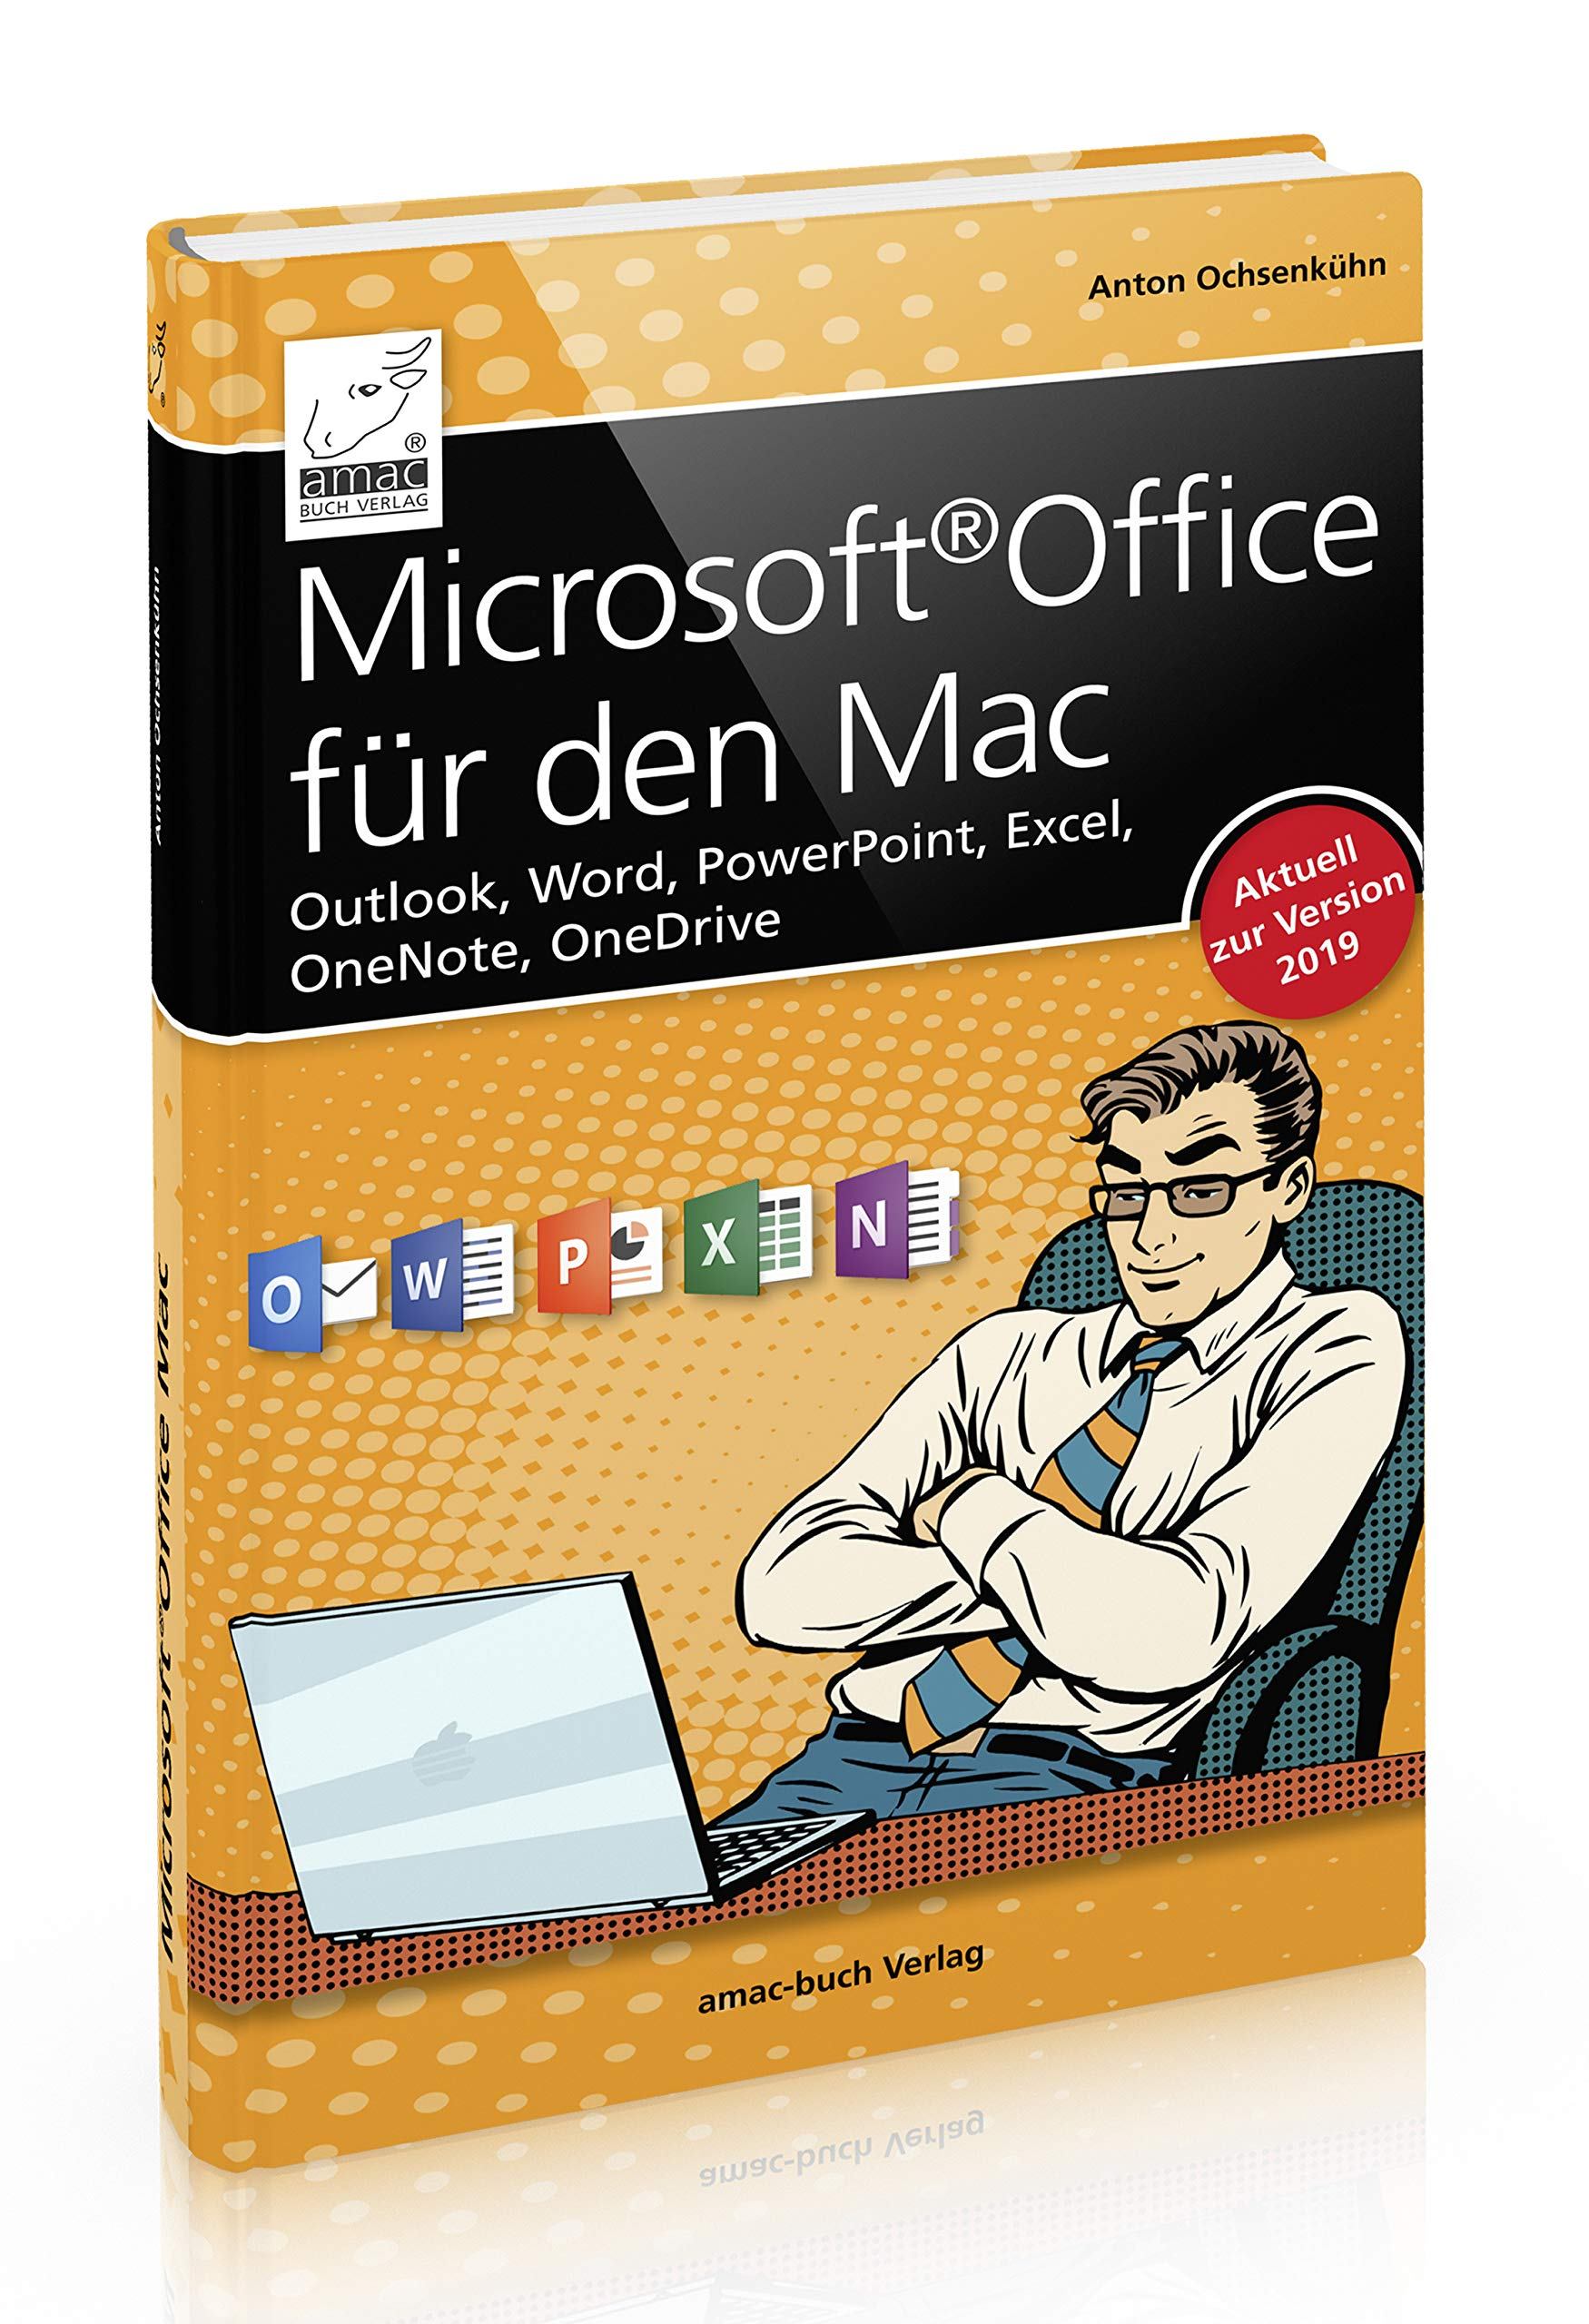 Download Microsoft Office Für Den Mac - Outlook, Word, PowerPoint, Excel, OneNote, OneDrive - Für Office 2019 